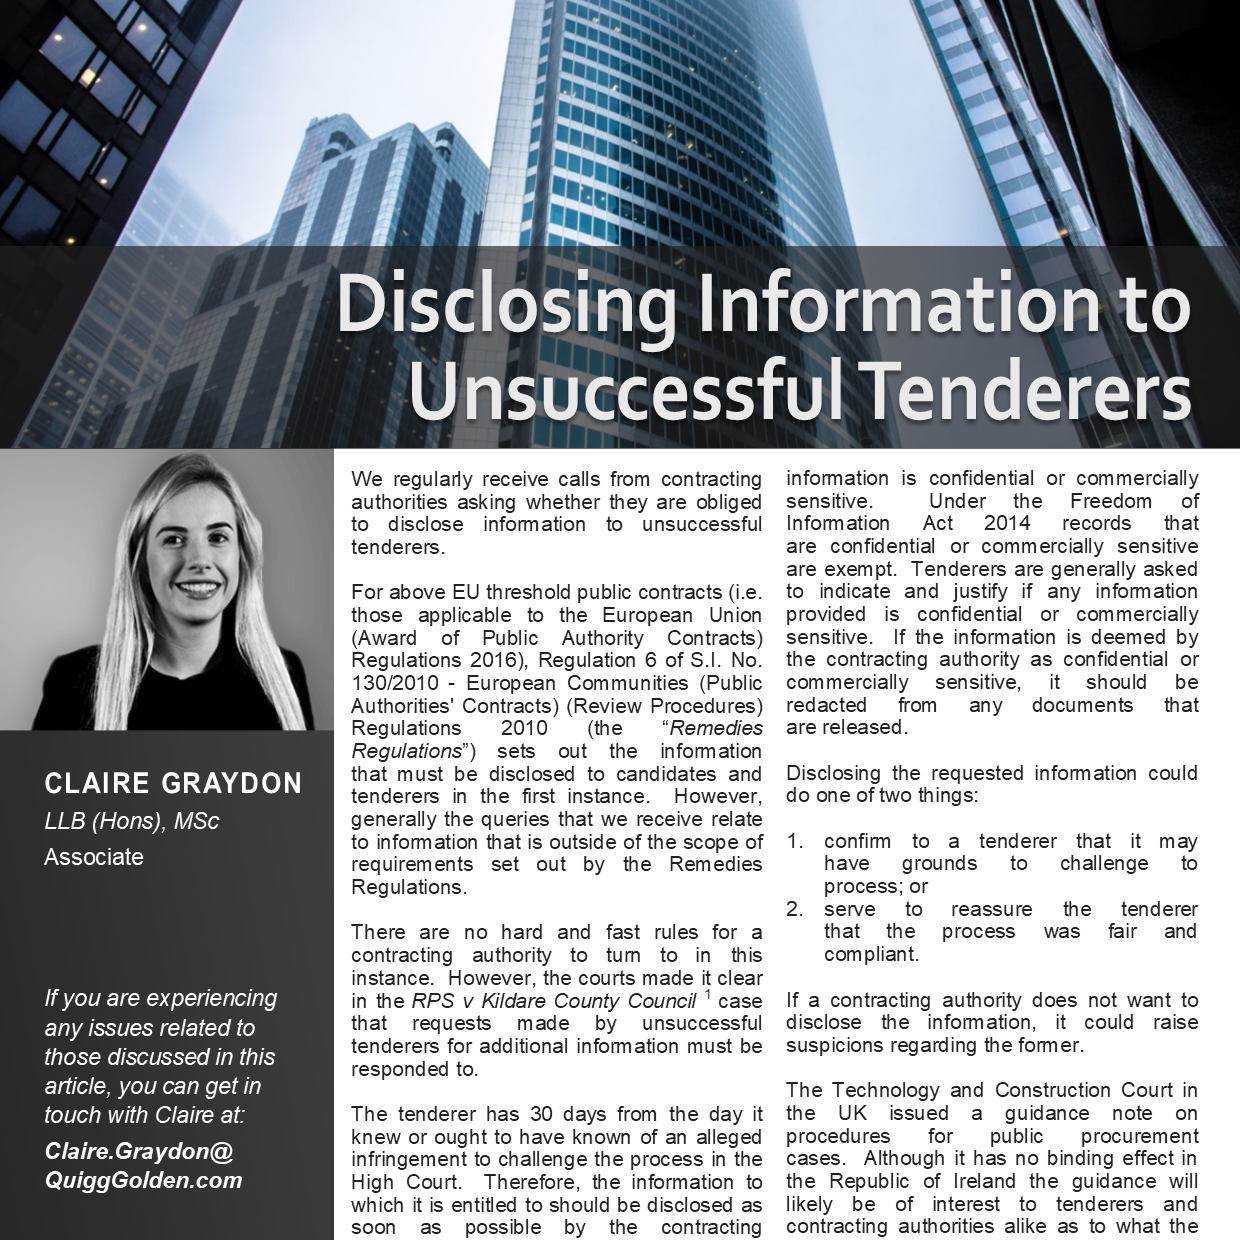 Disclosing Information to Unsuccessful Tenderers Article